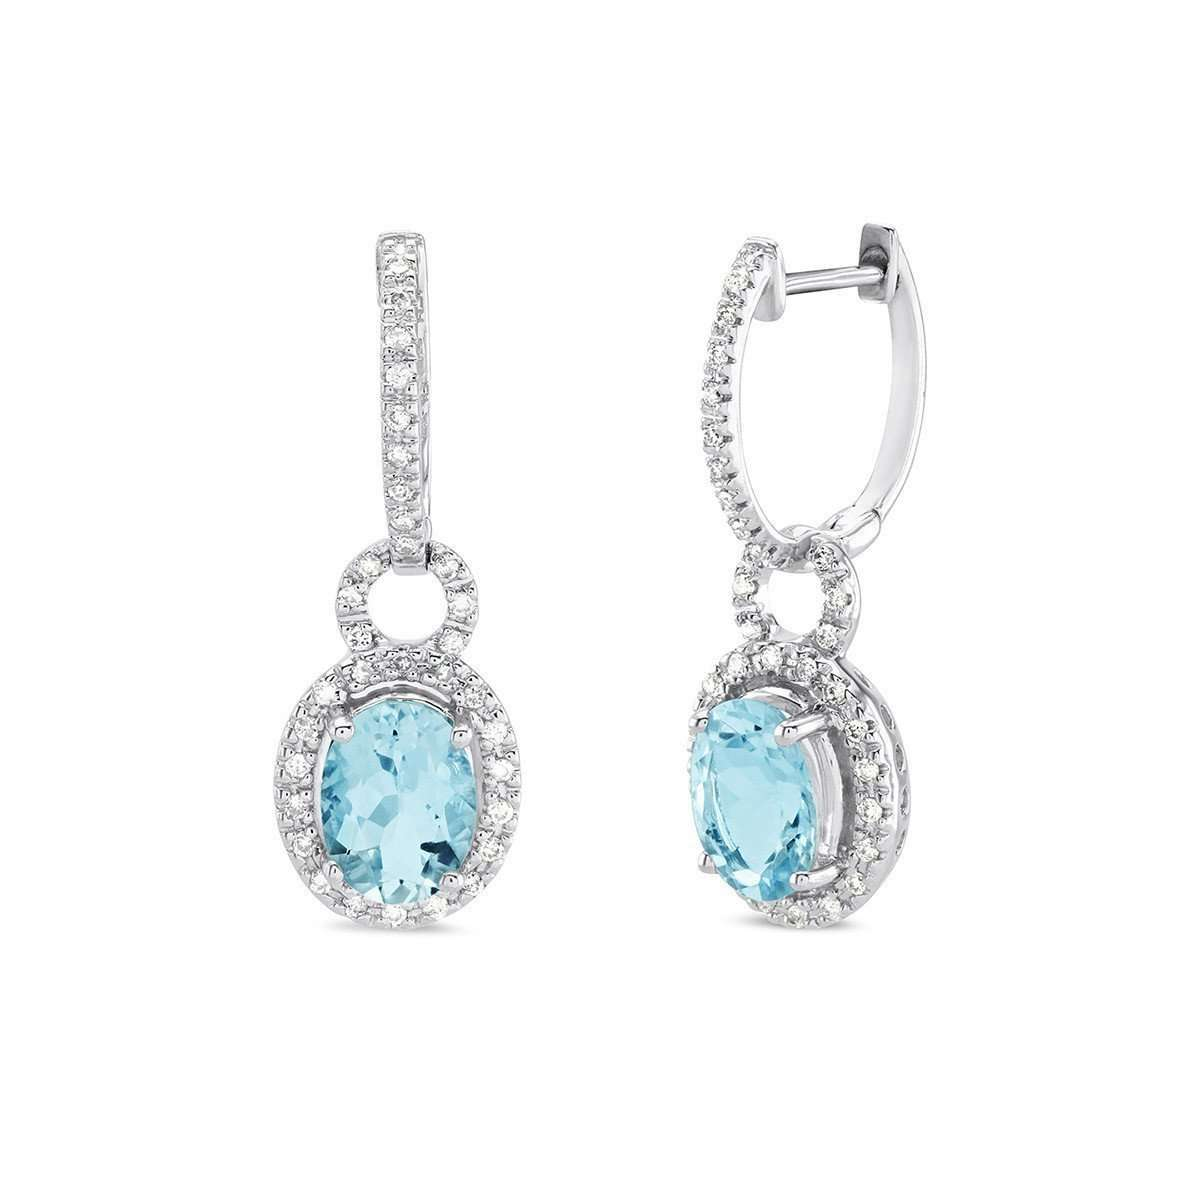 14kt White Gold Oval Cut Aqua Marine Dangly Earrings-Marmalade Fine Jewellery-JewelStreet US